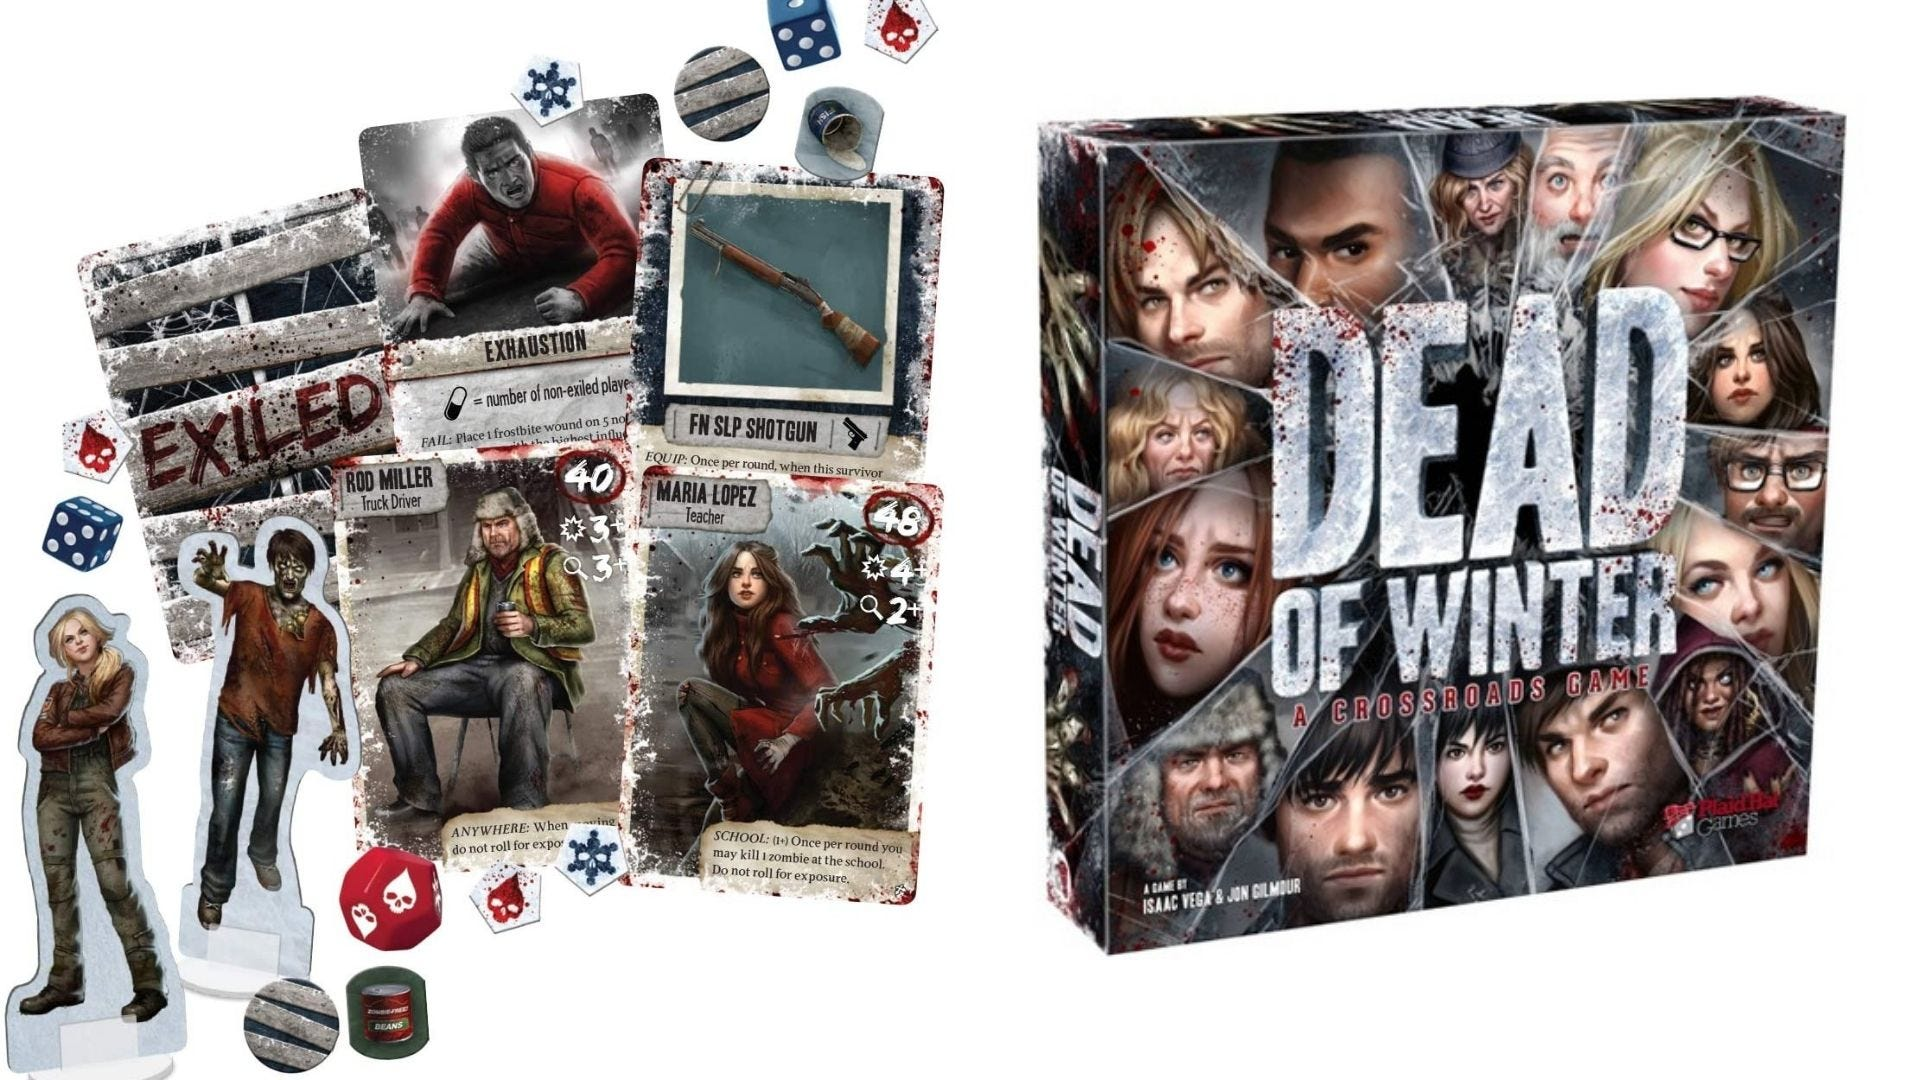 The pieces and cards from 'Dead of Winter' sitting beside the box.